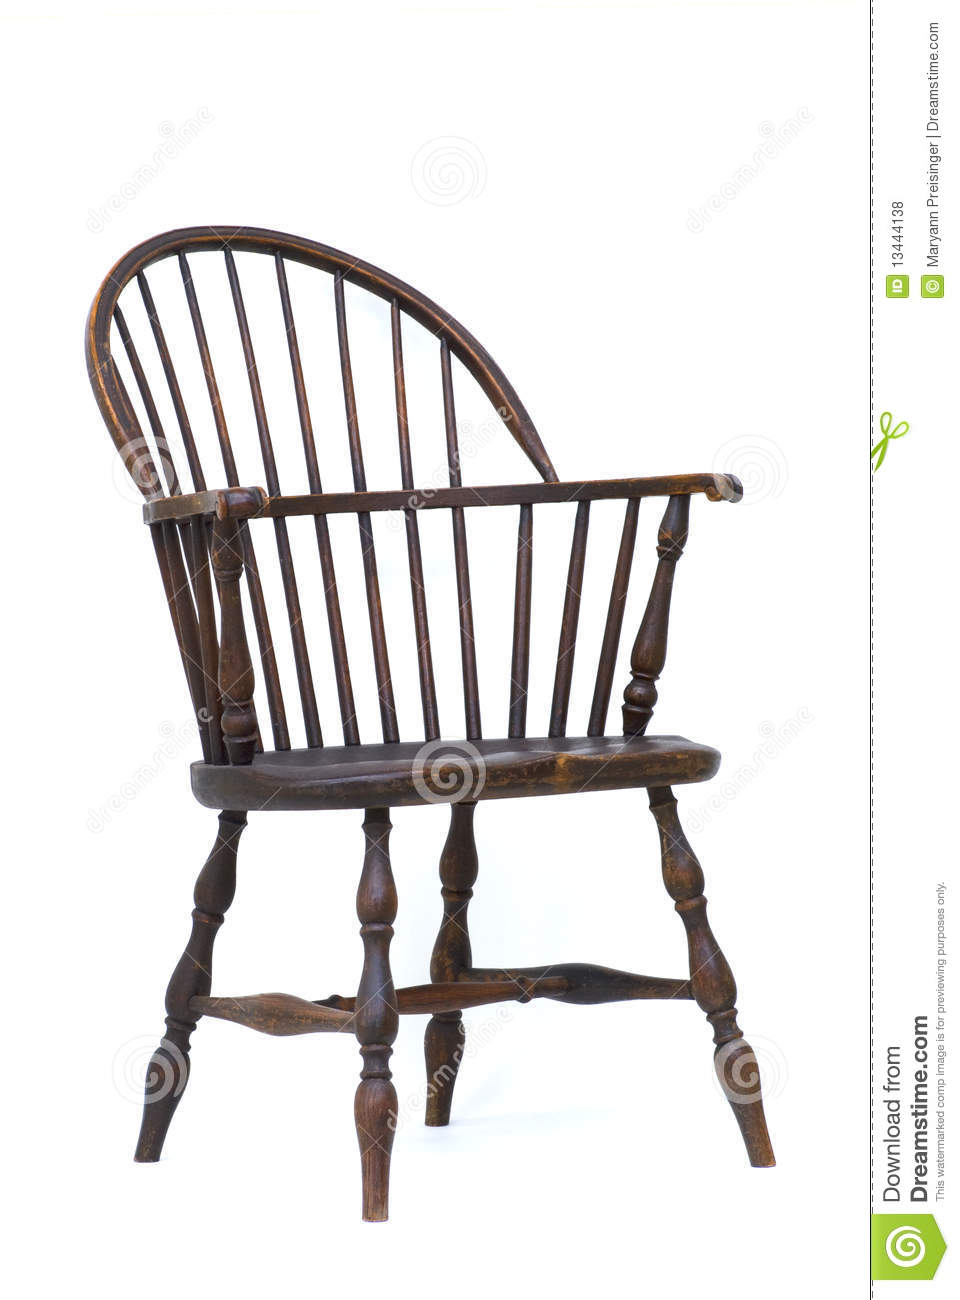 Antique Windsor Chair Isolated